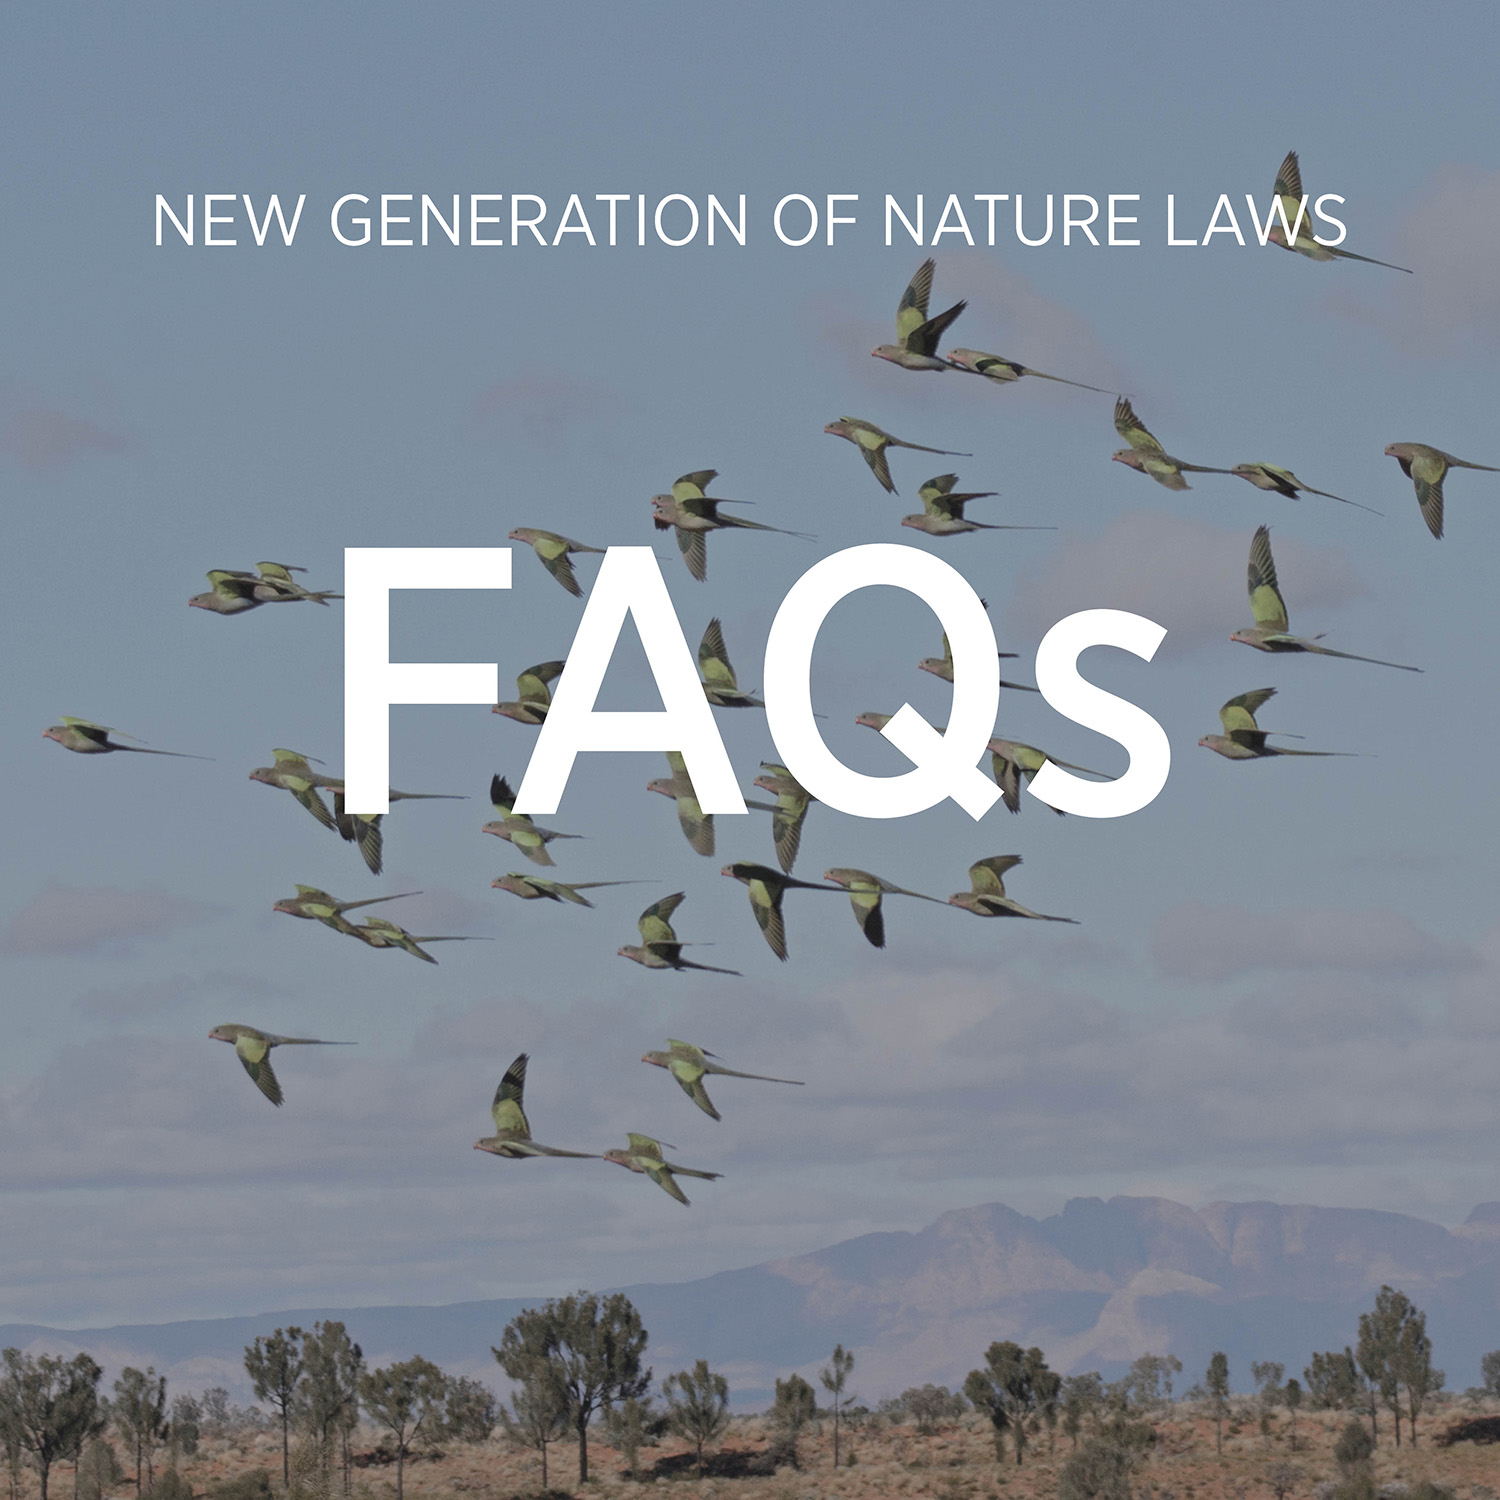 The new nature laws campaign is big and ambitious. We want everyone to feel confident talking about it. We'll regularly update this document to answer common questions.